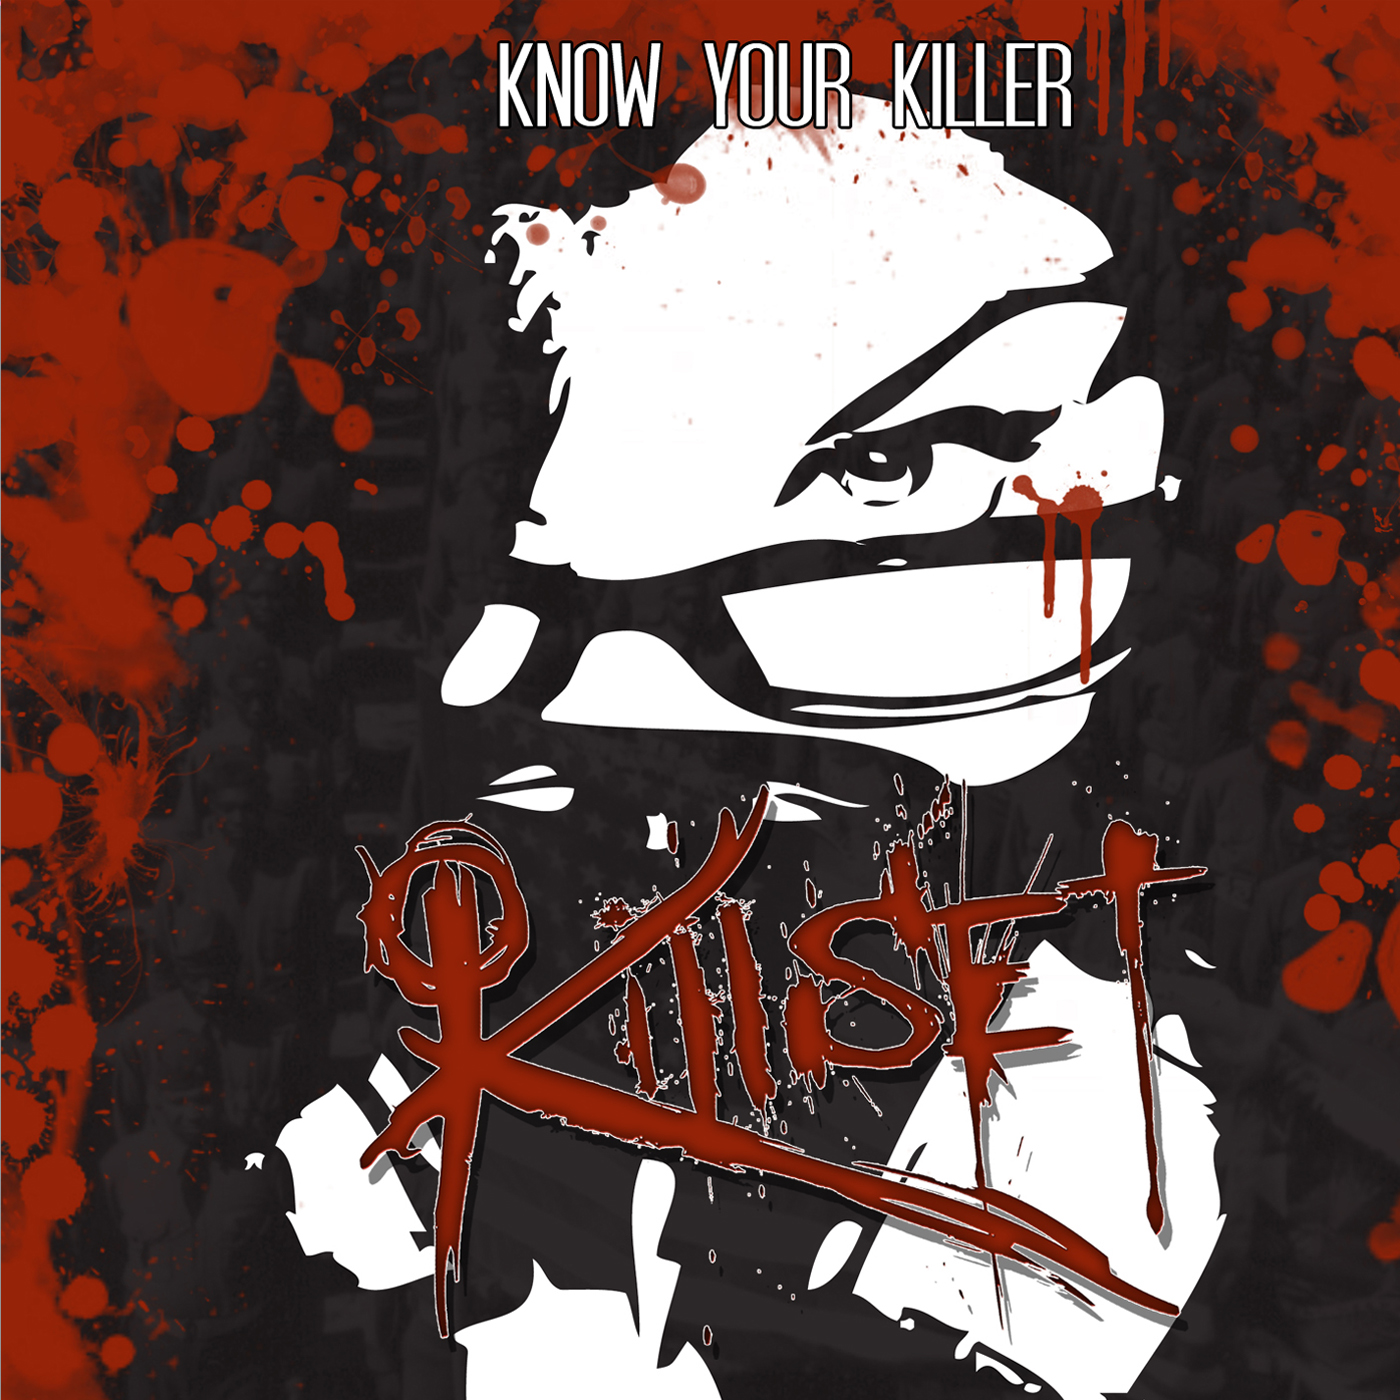 KillSET - Know Your Killer